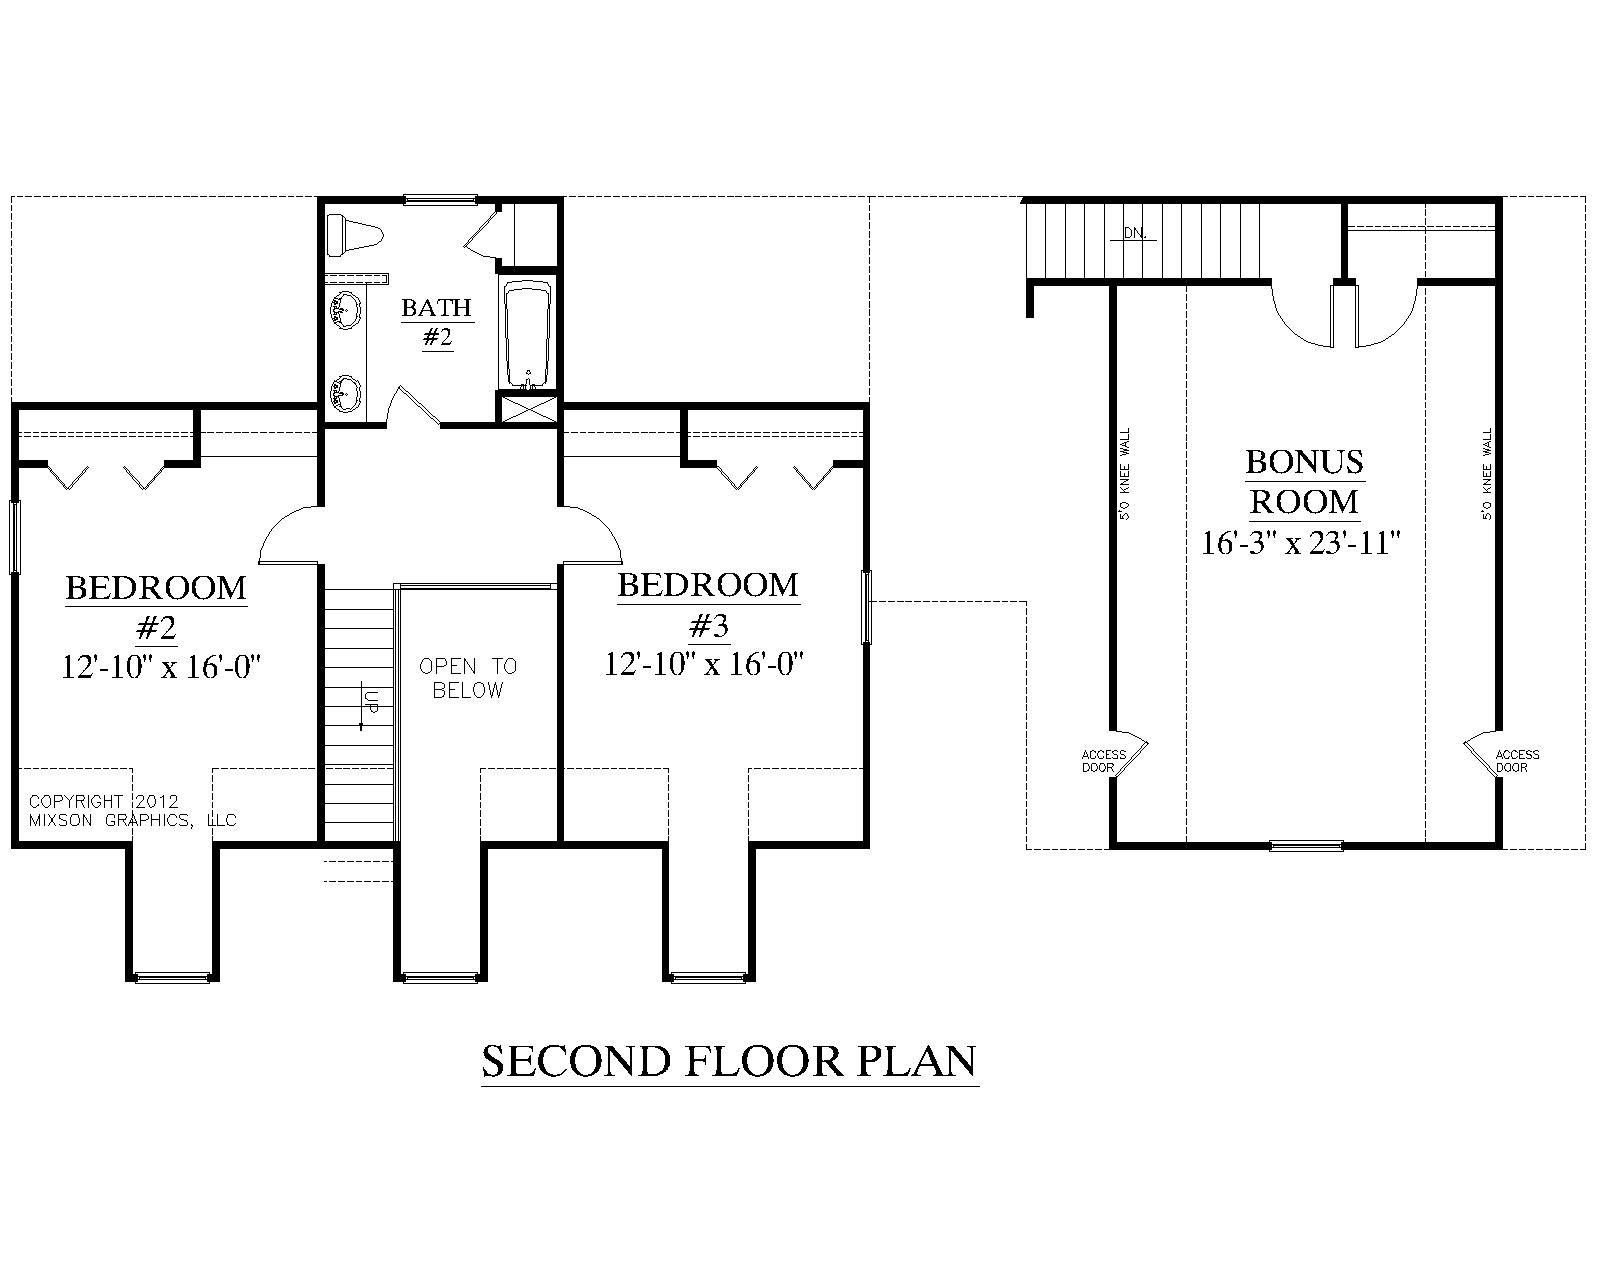 House plan 2091 b mayfield b second floor plan for One and one half story house plans